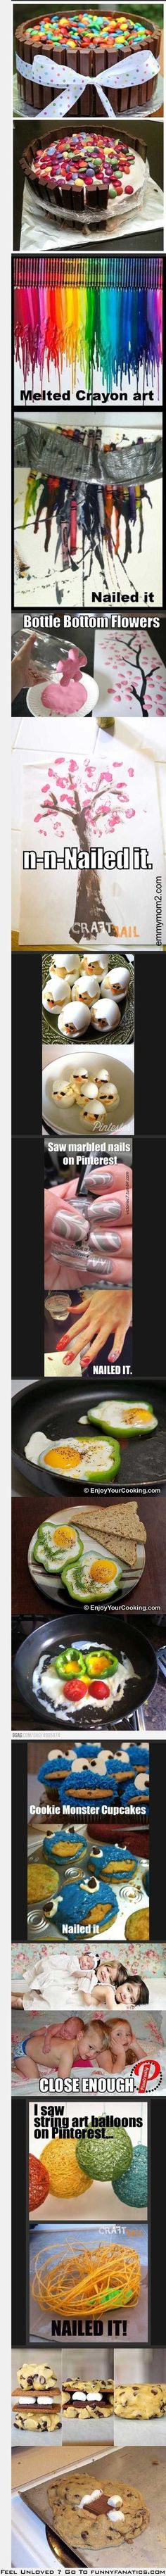 Pinterest fails – so funny, so true